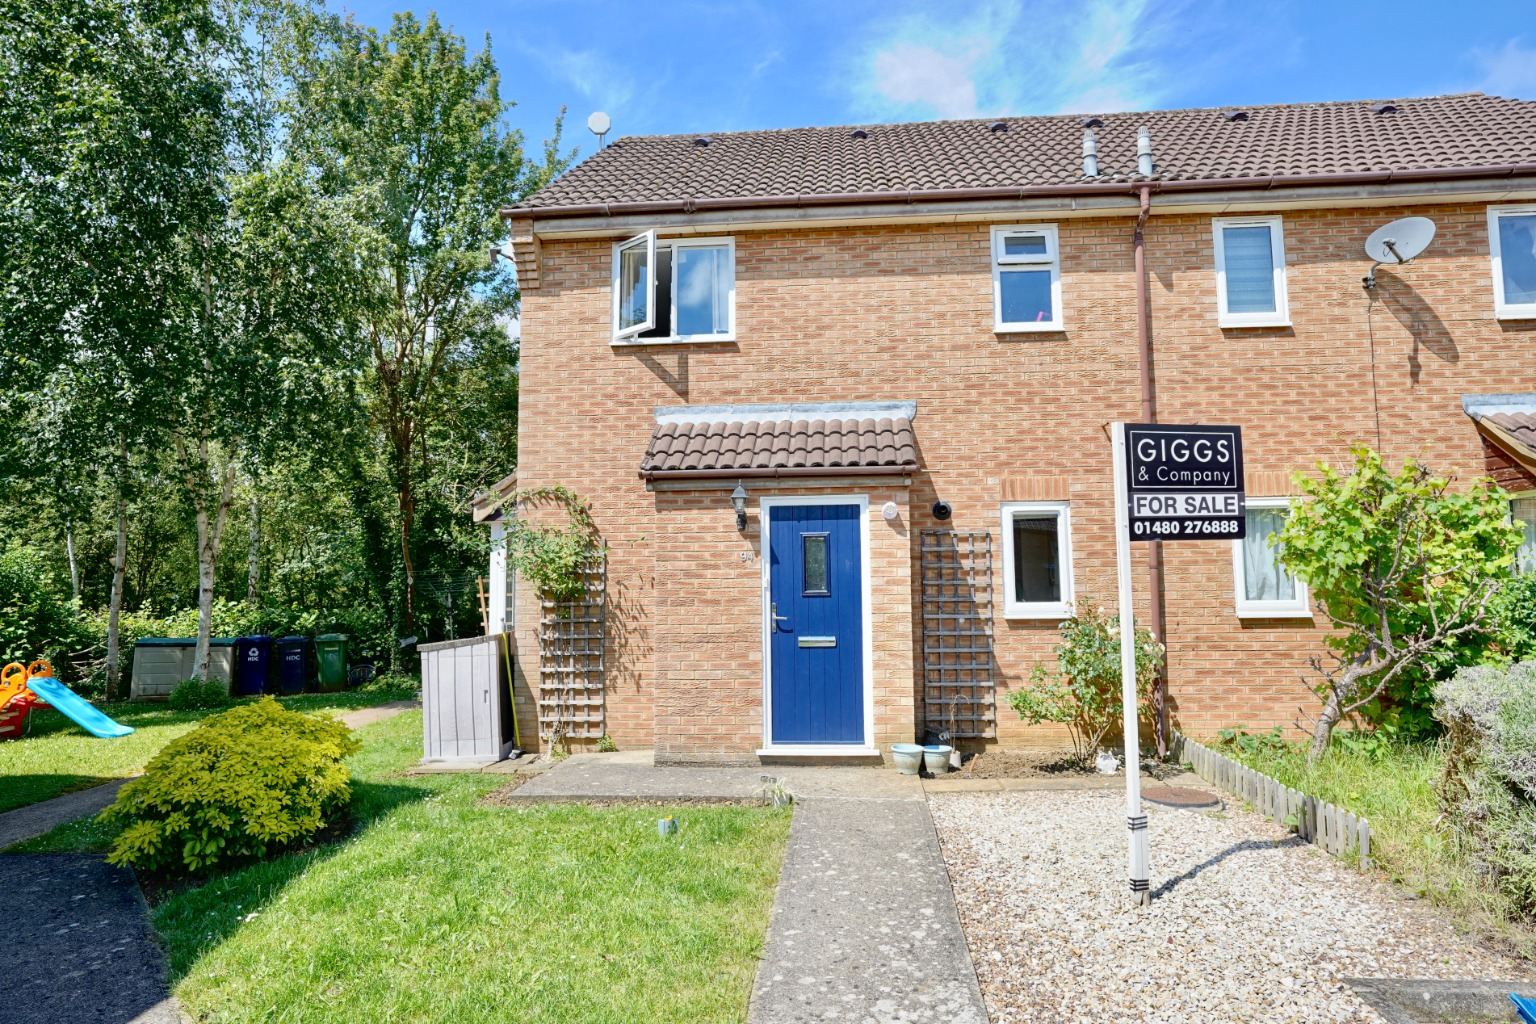 1 bed end of terrace house for sale in Cornwallis Drive, St. Neots  - Property Image 1